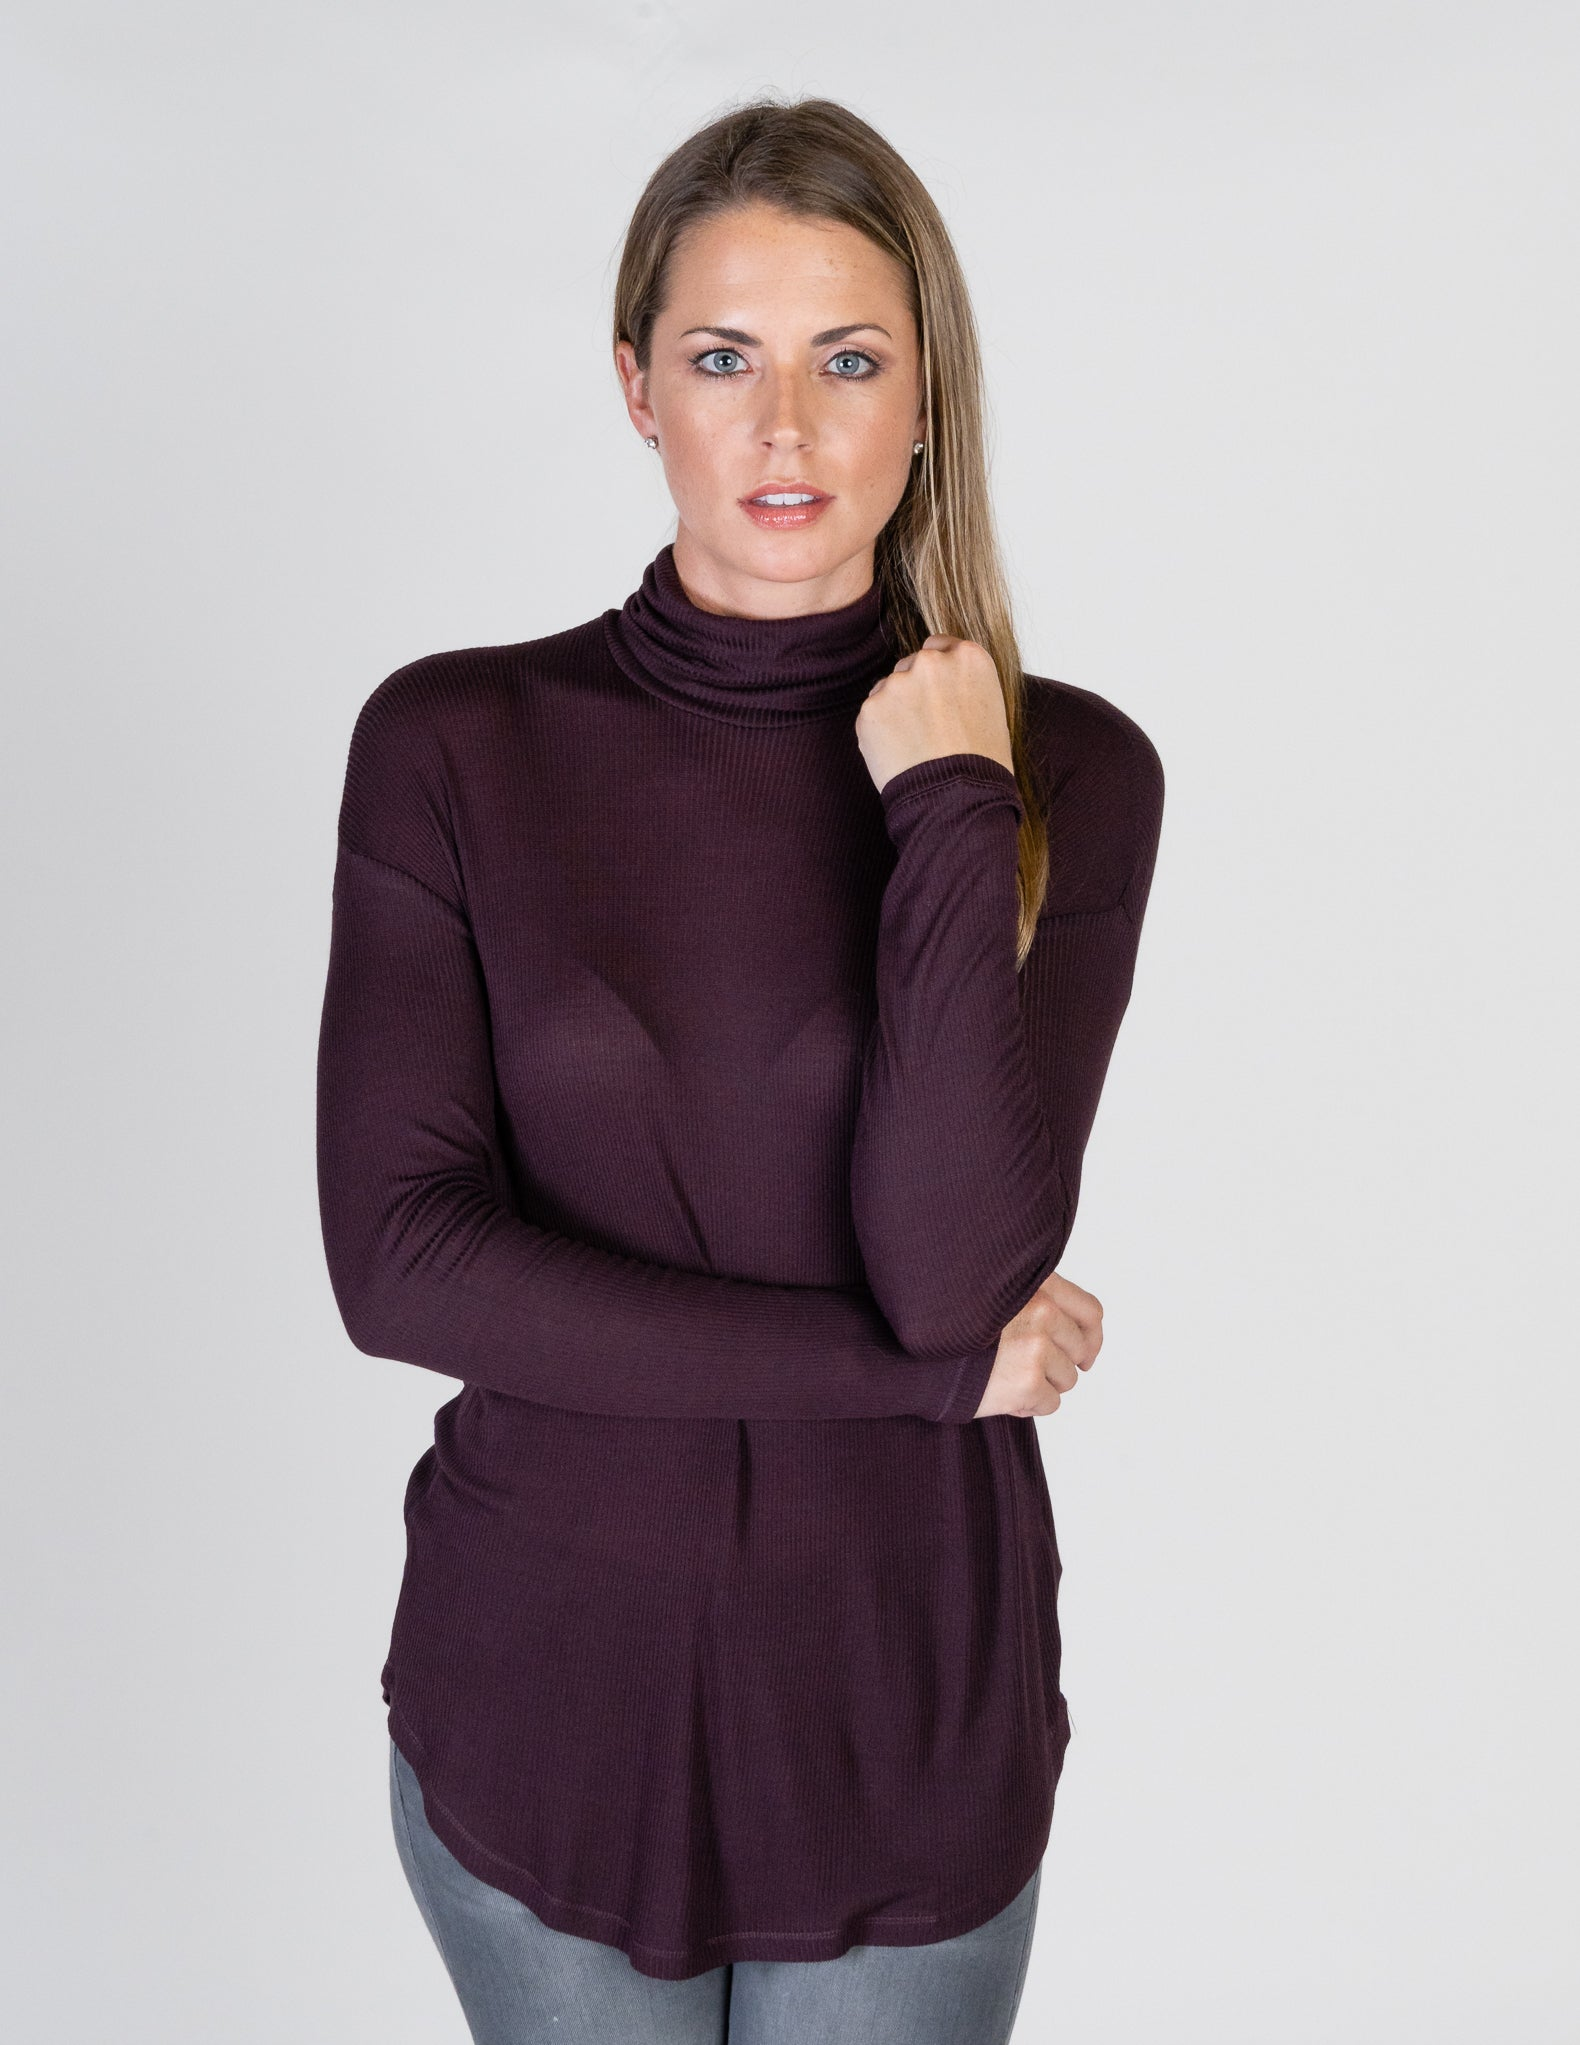 Majestic Viscose Rib Long Sleeve Drop-Shoulder Turtleneck